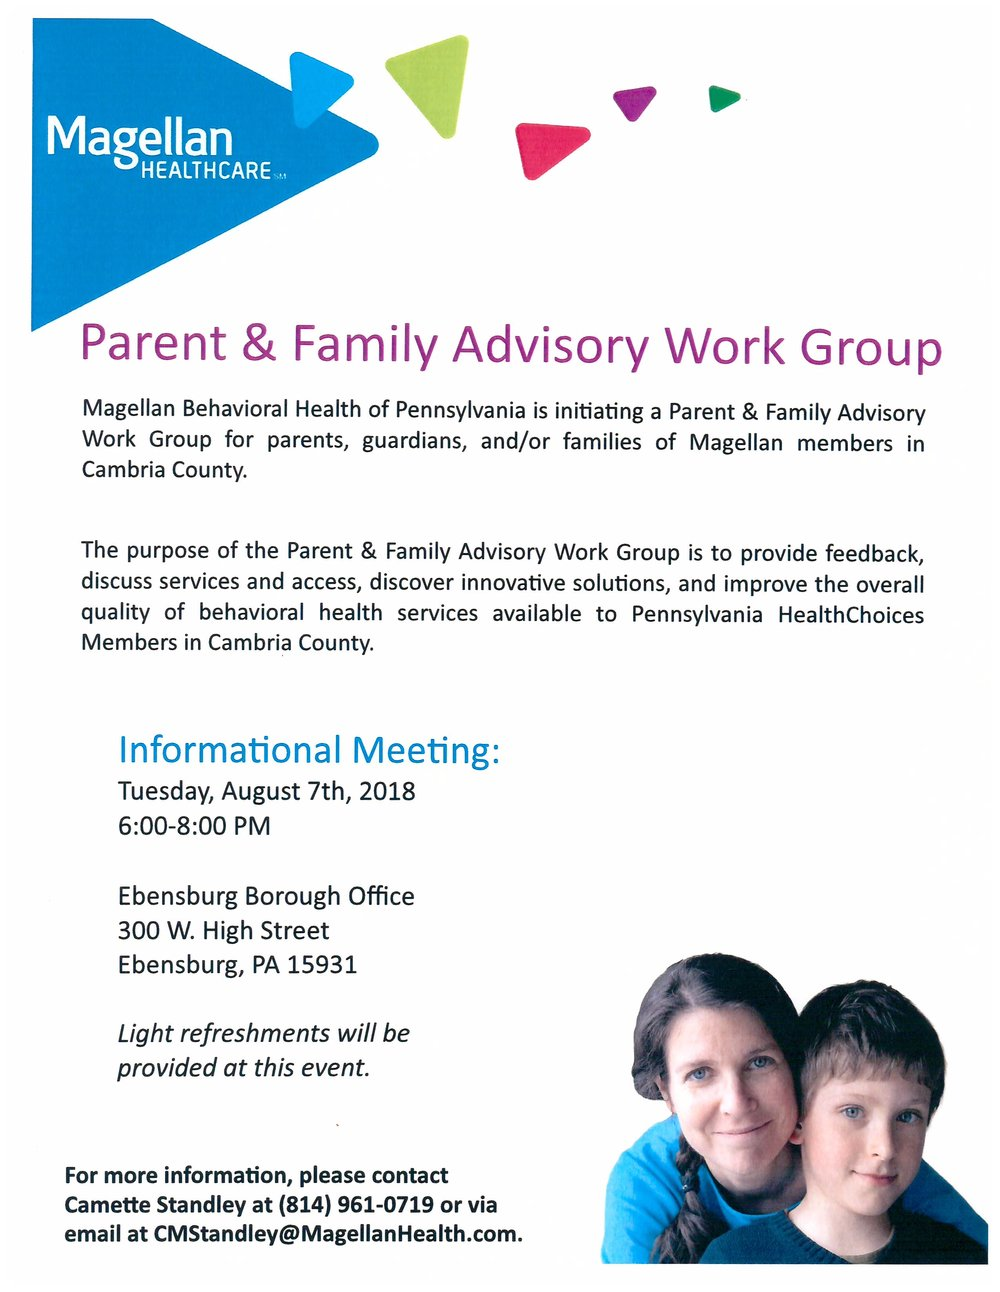 Parent and Family Advisory Work Group. 8.7.18 - Copy.jpg